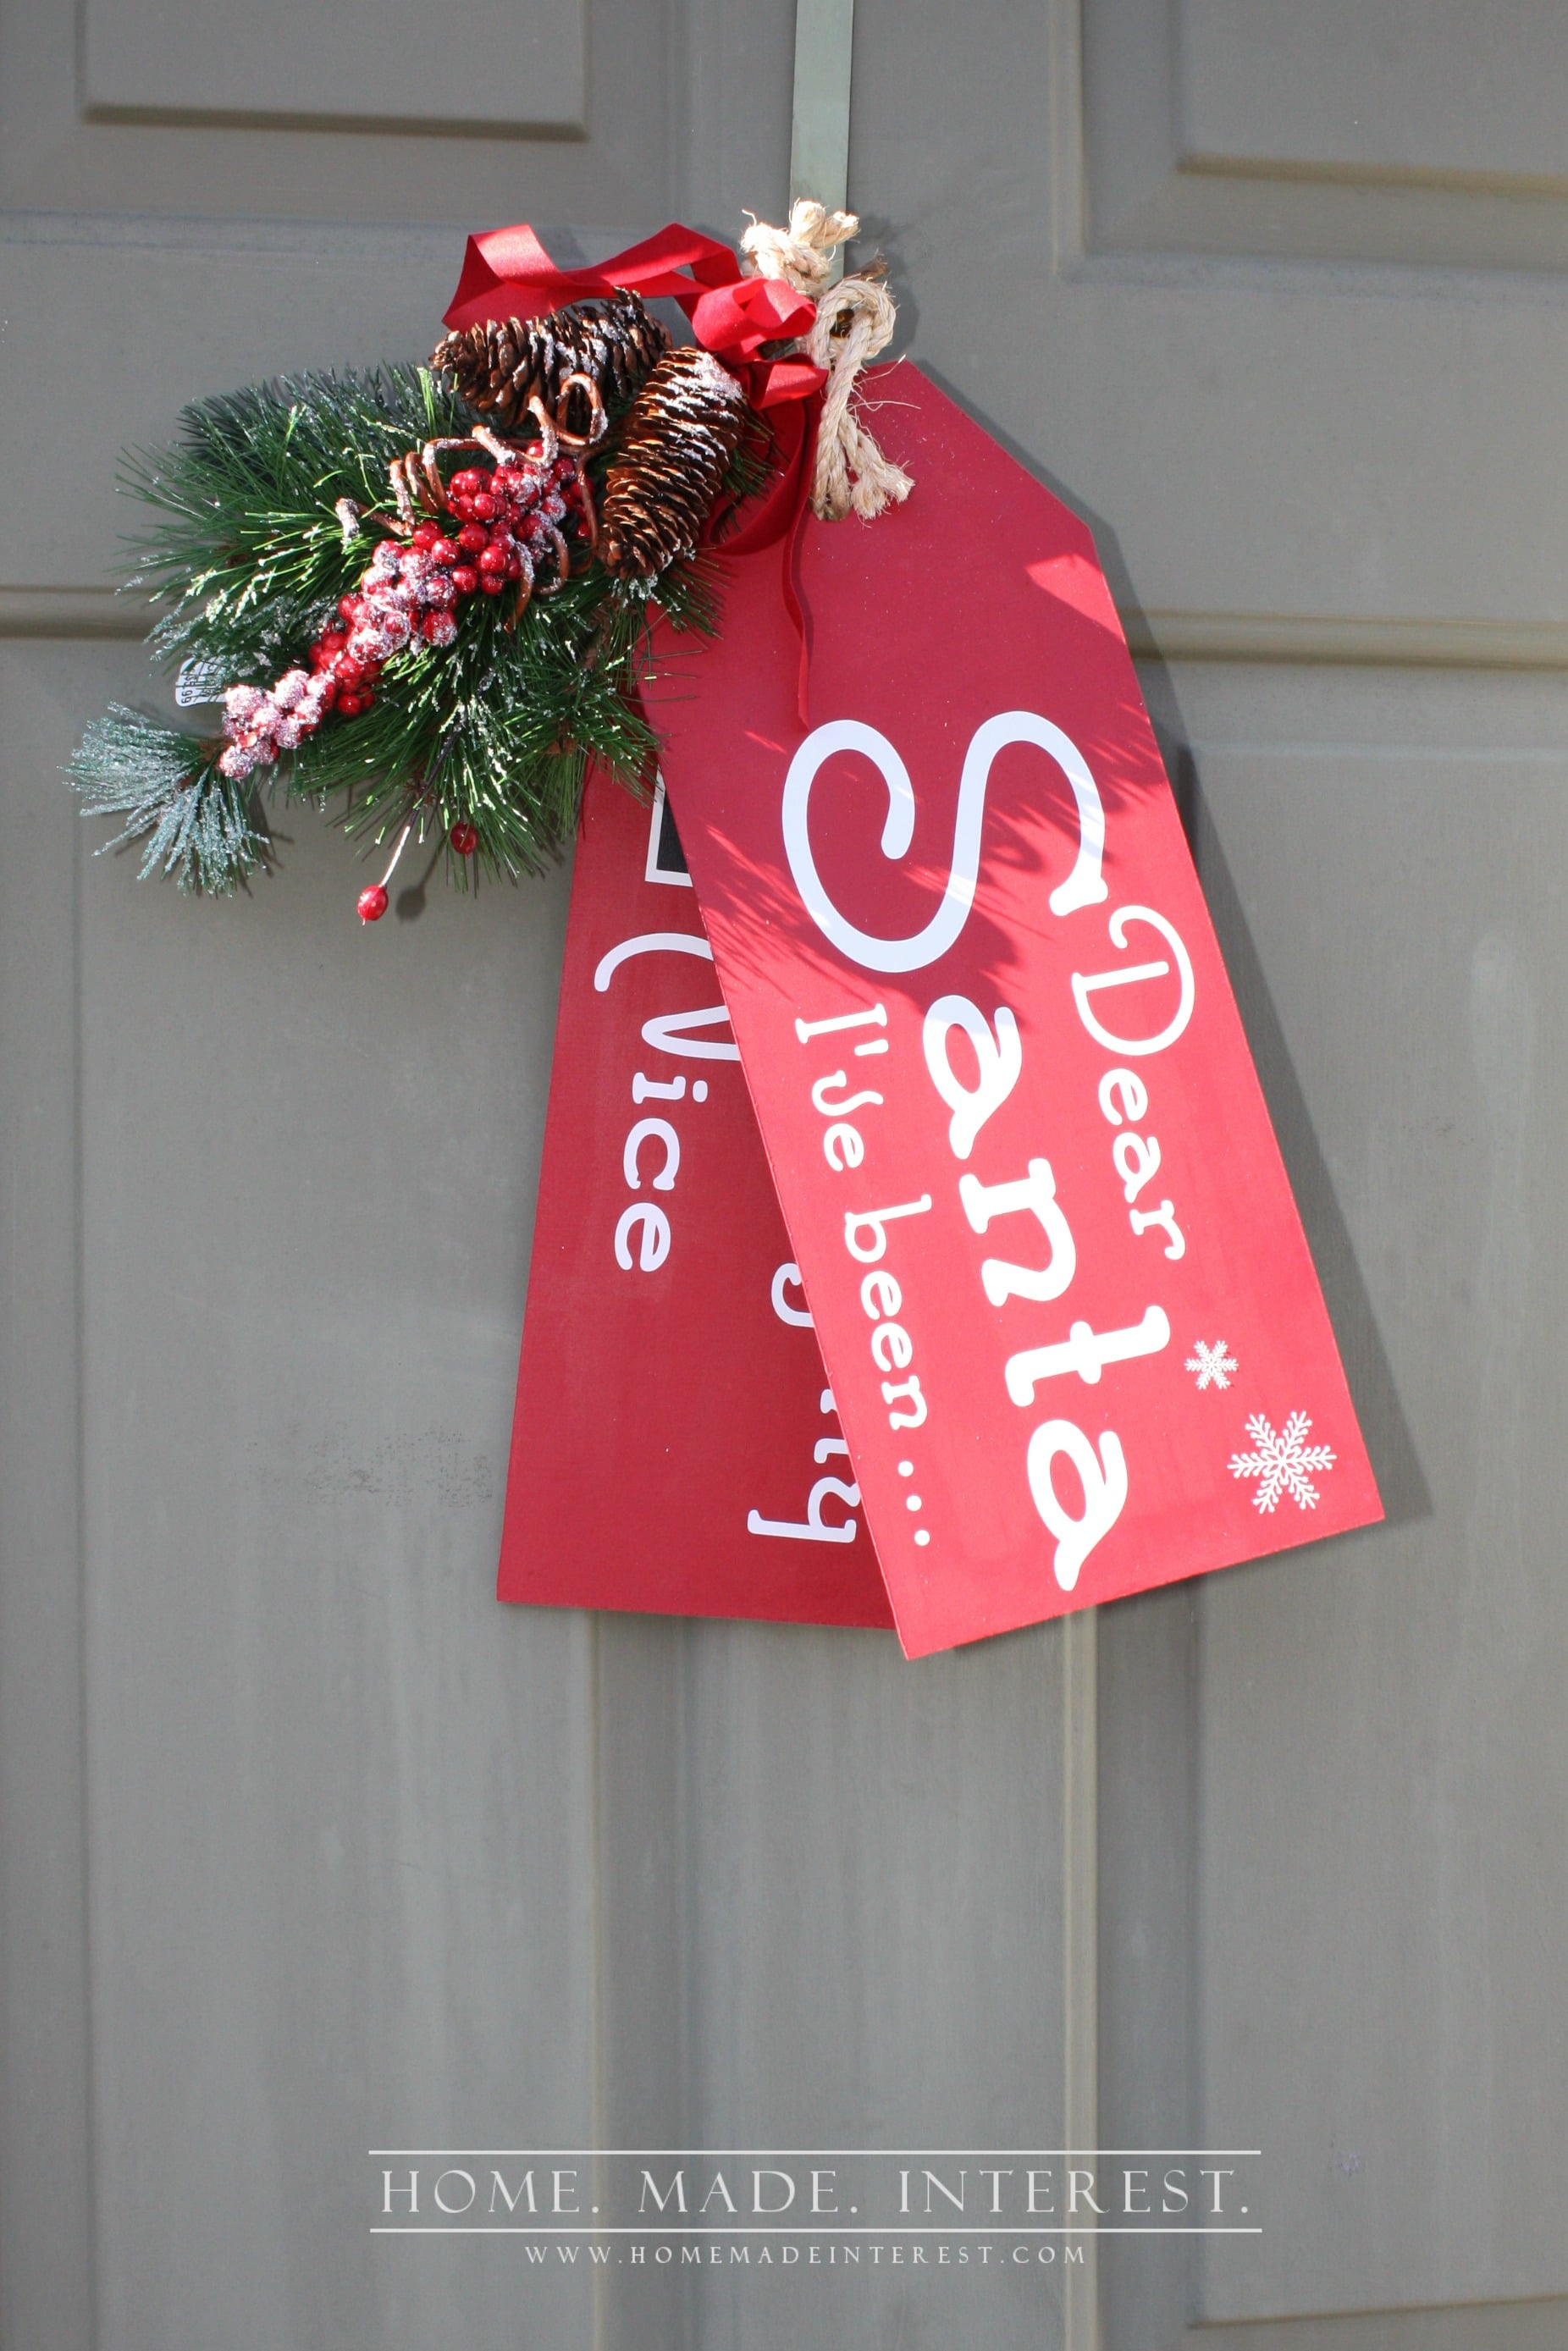 These wooden door tags are perfect craft to decorate for the Christmas season. The chalkboard check boxes mean the kids get to mark if they are on the naughty or nice list so Santa will know when he stops by!